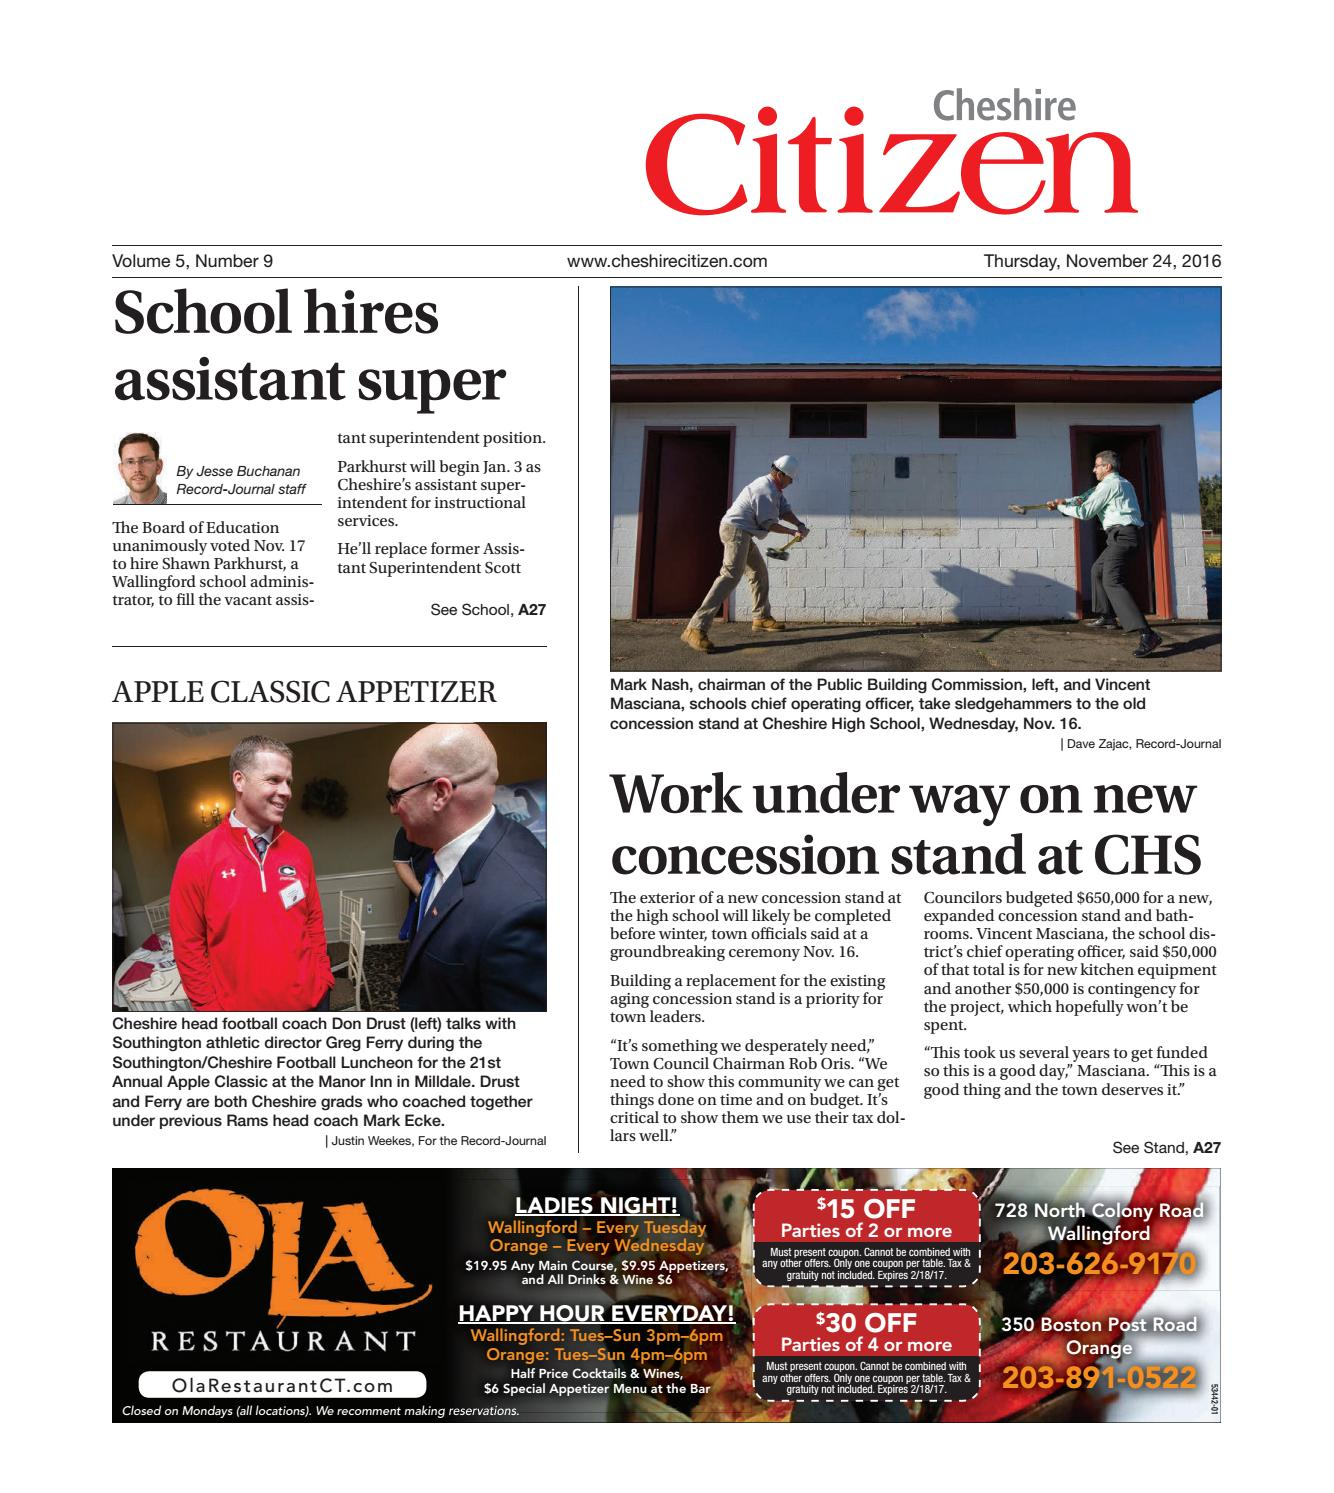 Cheshirecitizen20161124 by cheshire citizen issuu fandeluxe Image collections